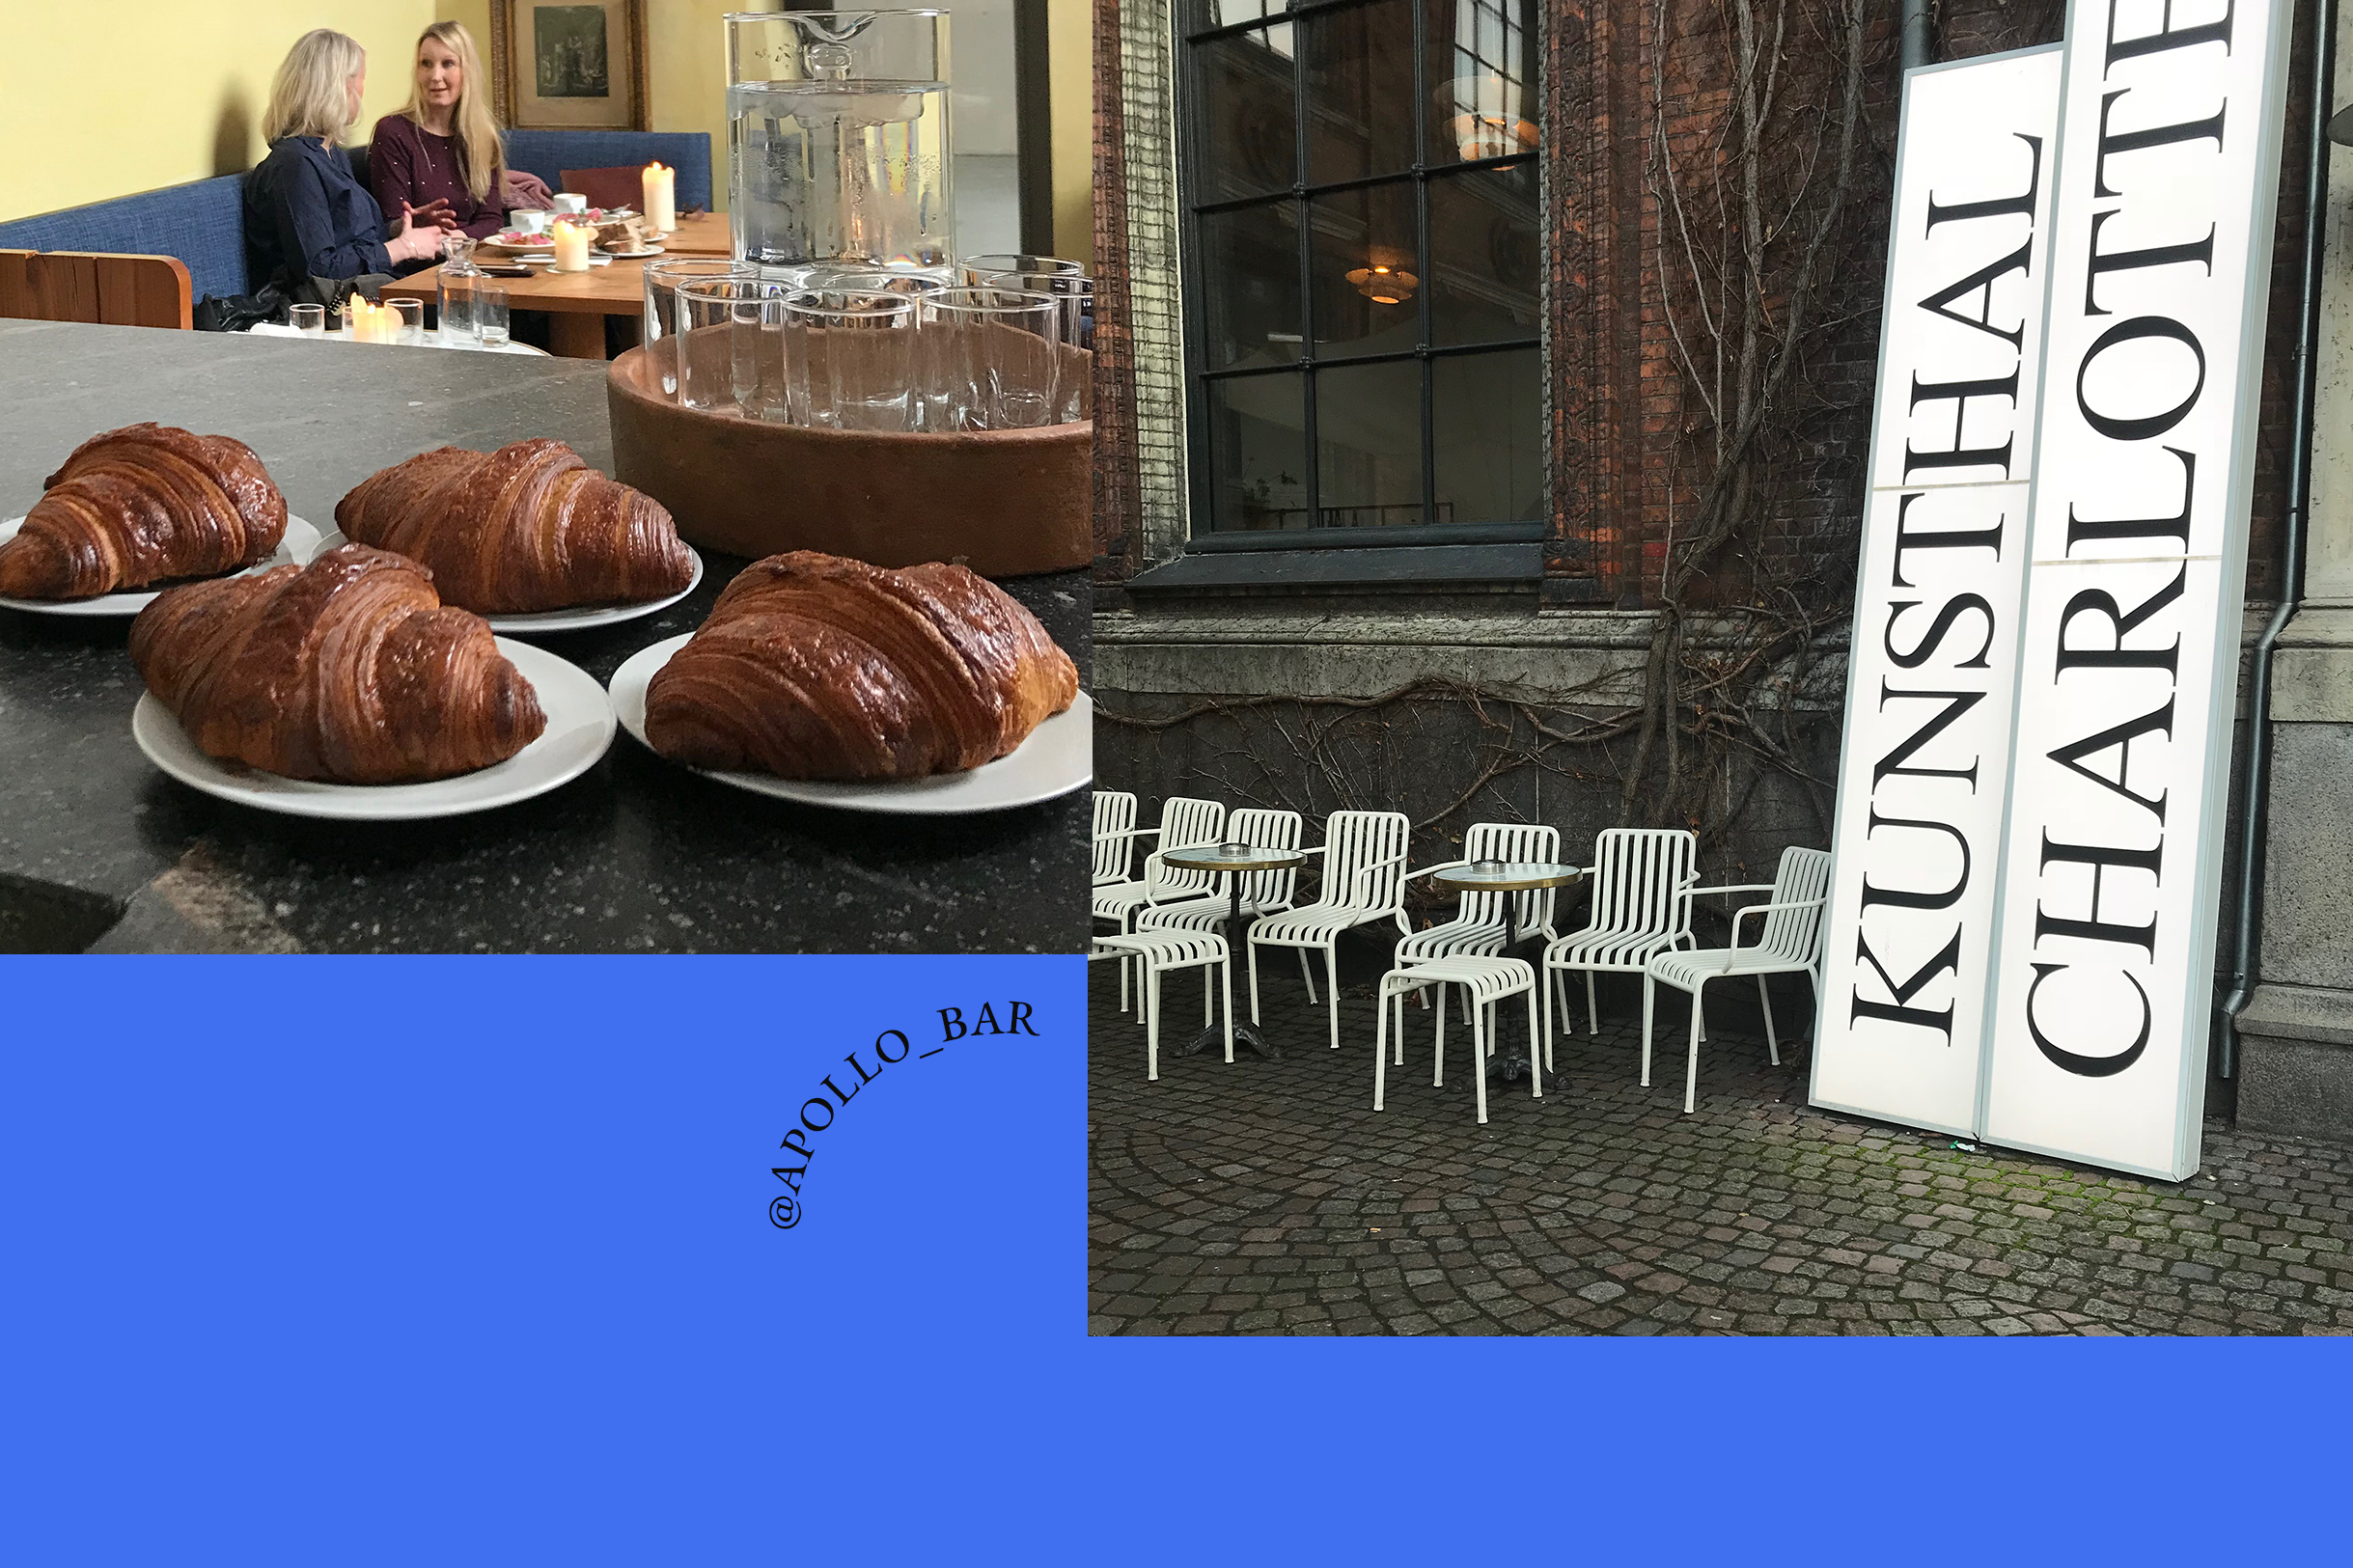 Apollo Bar & Kantine croissants in Copenhagen